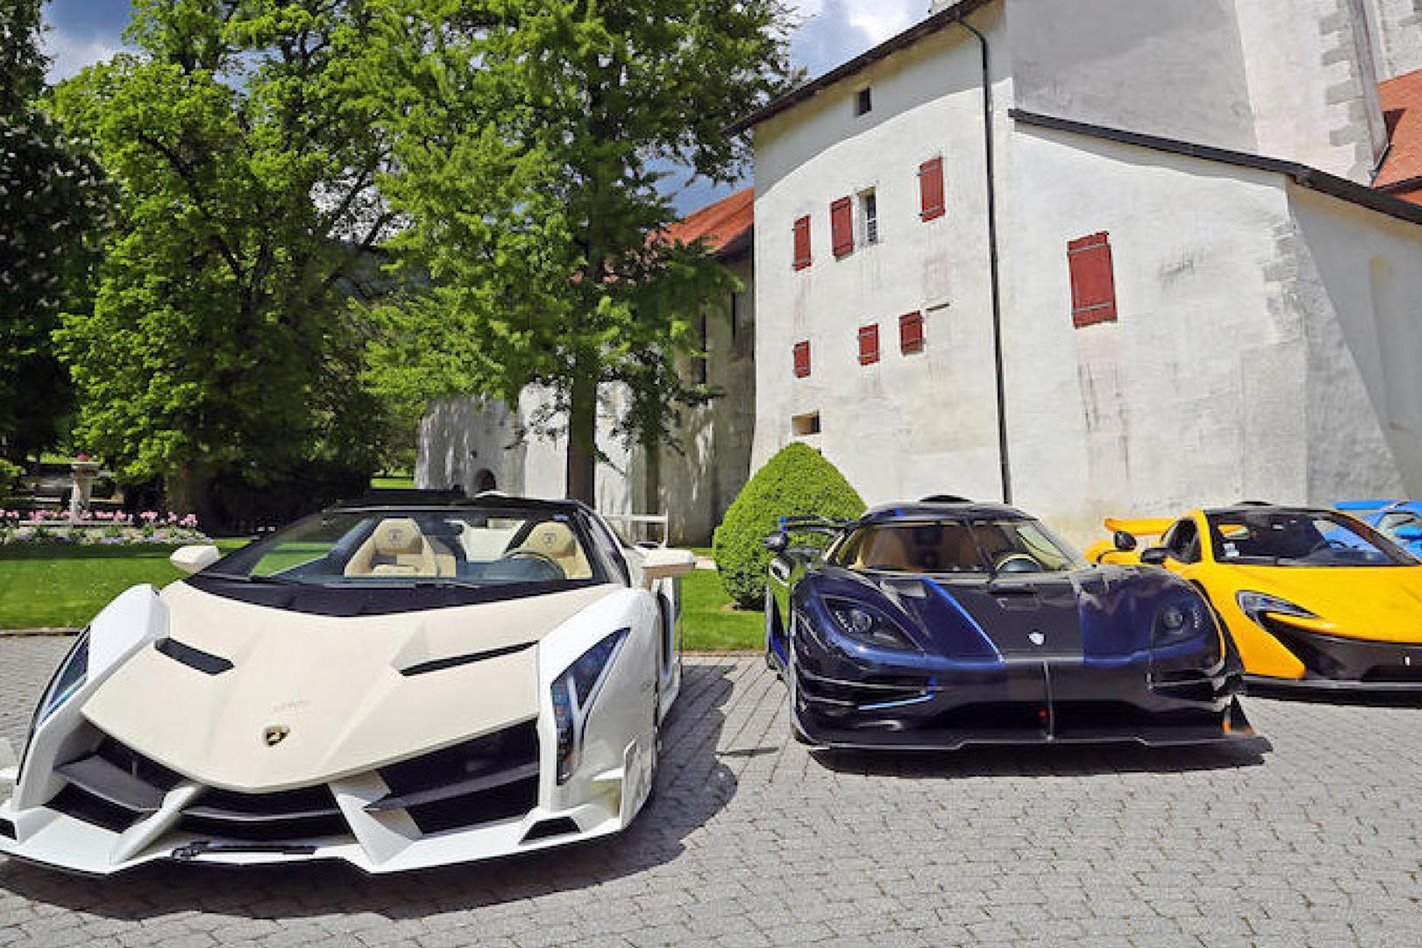 Swiss authorities to auction off a prince's seized hypercars